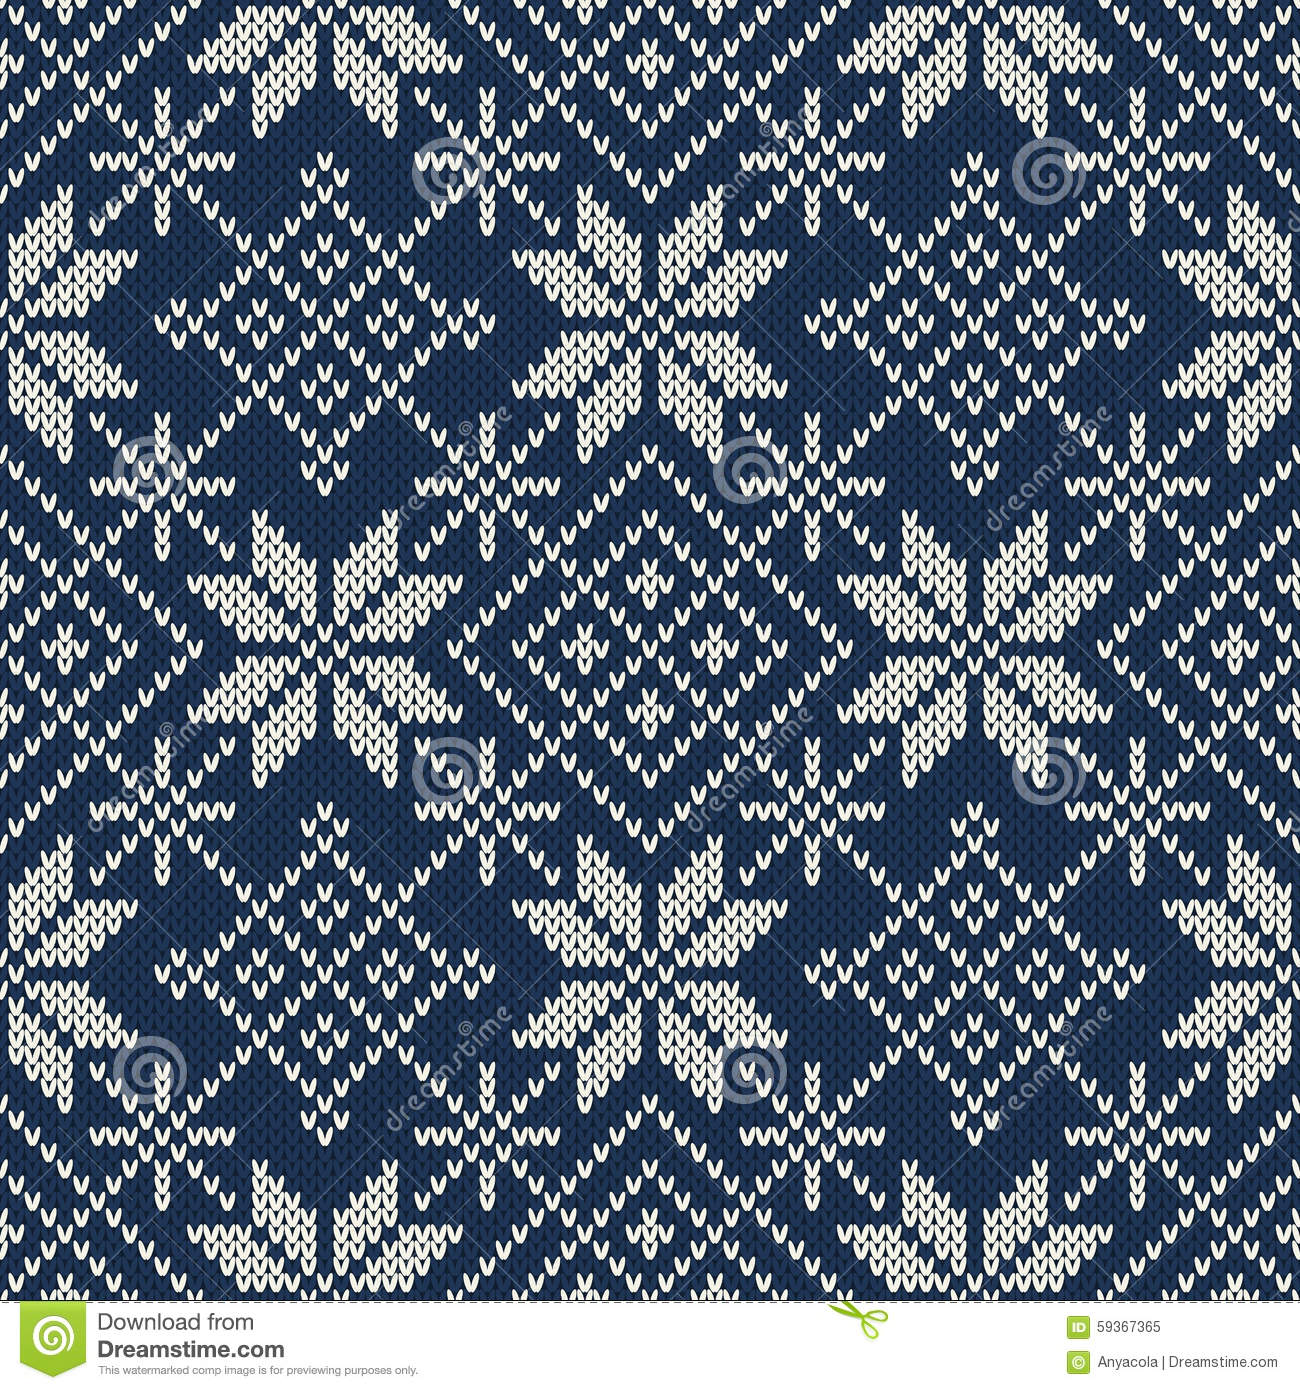 Knitting Vector Patterns : Christmas sweater design seamless knitting pattern stock